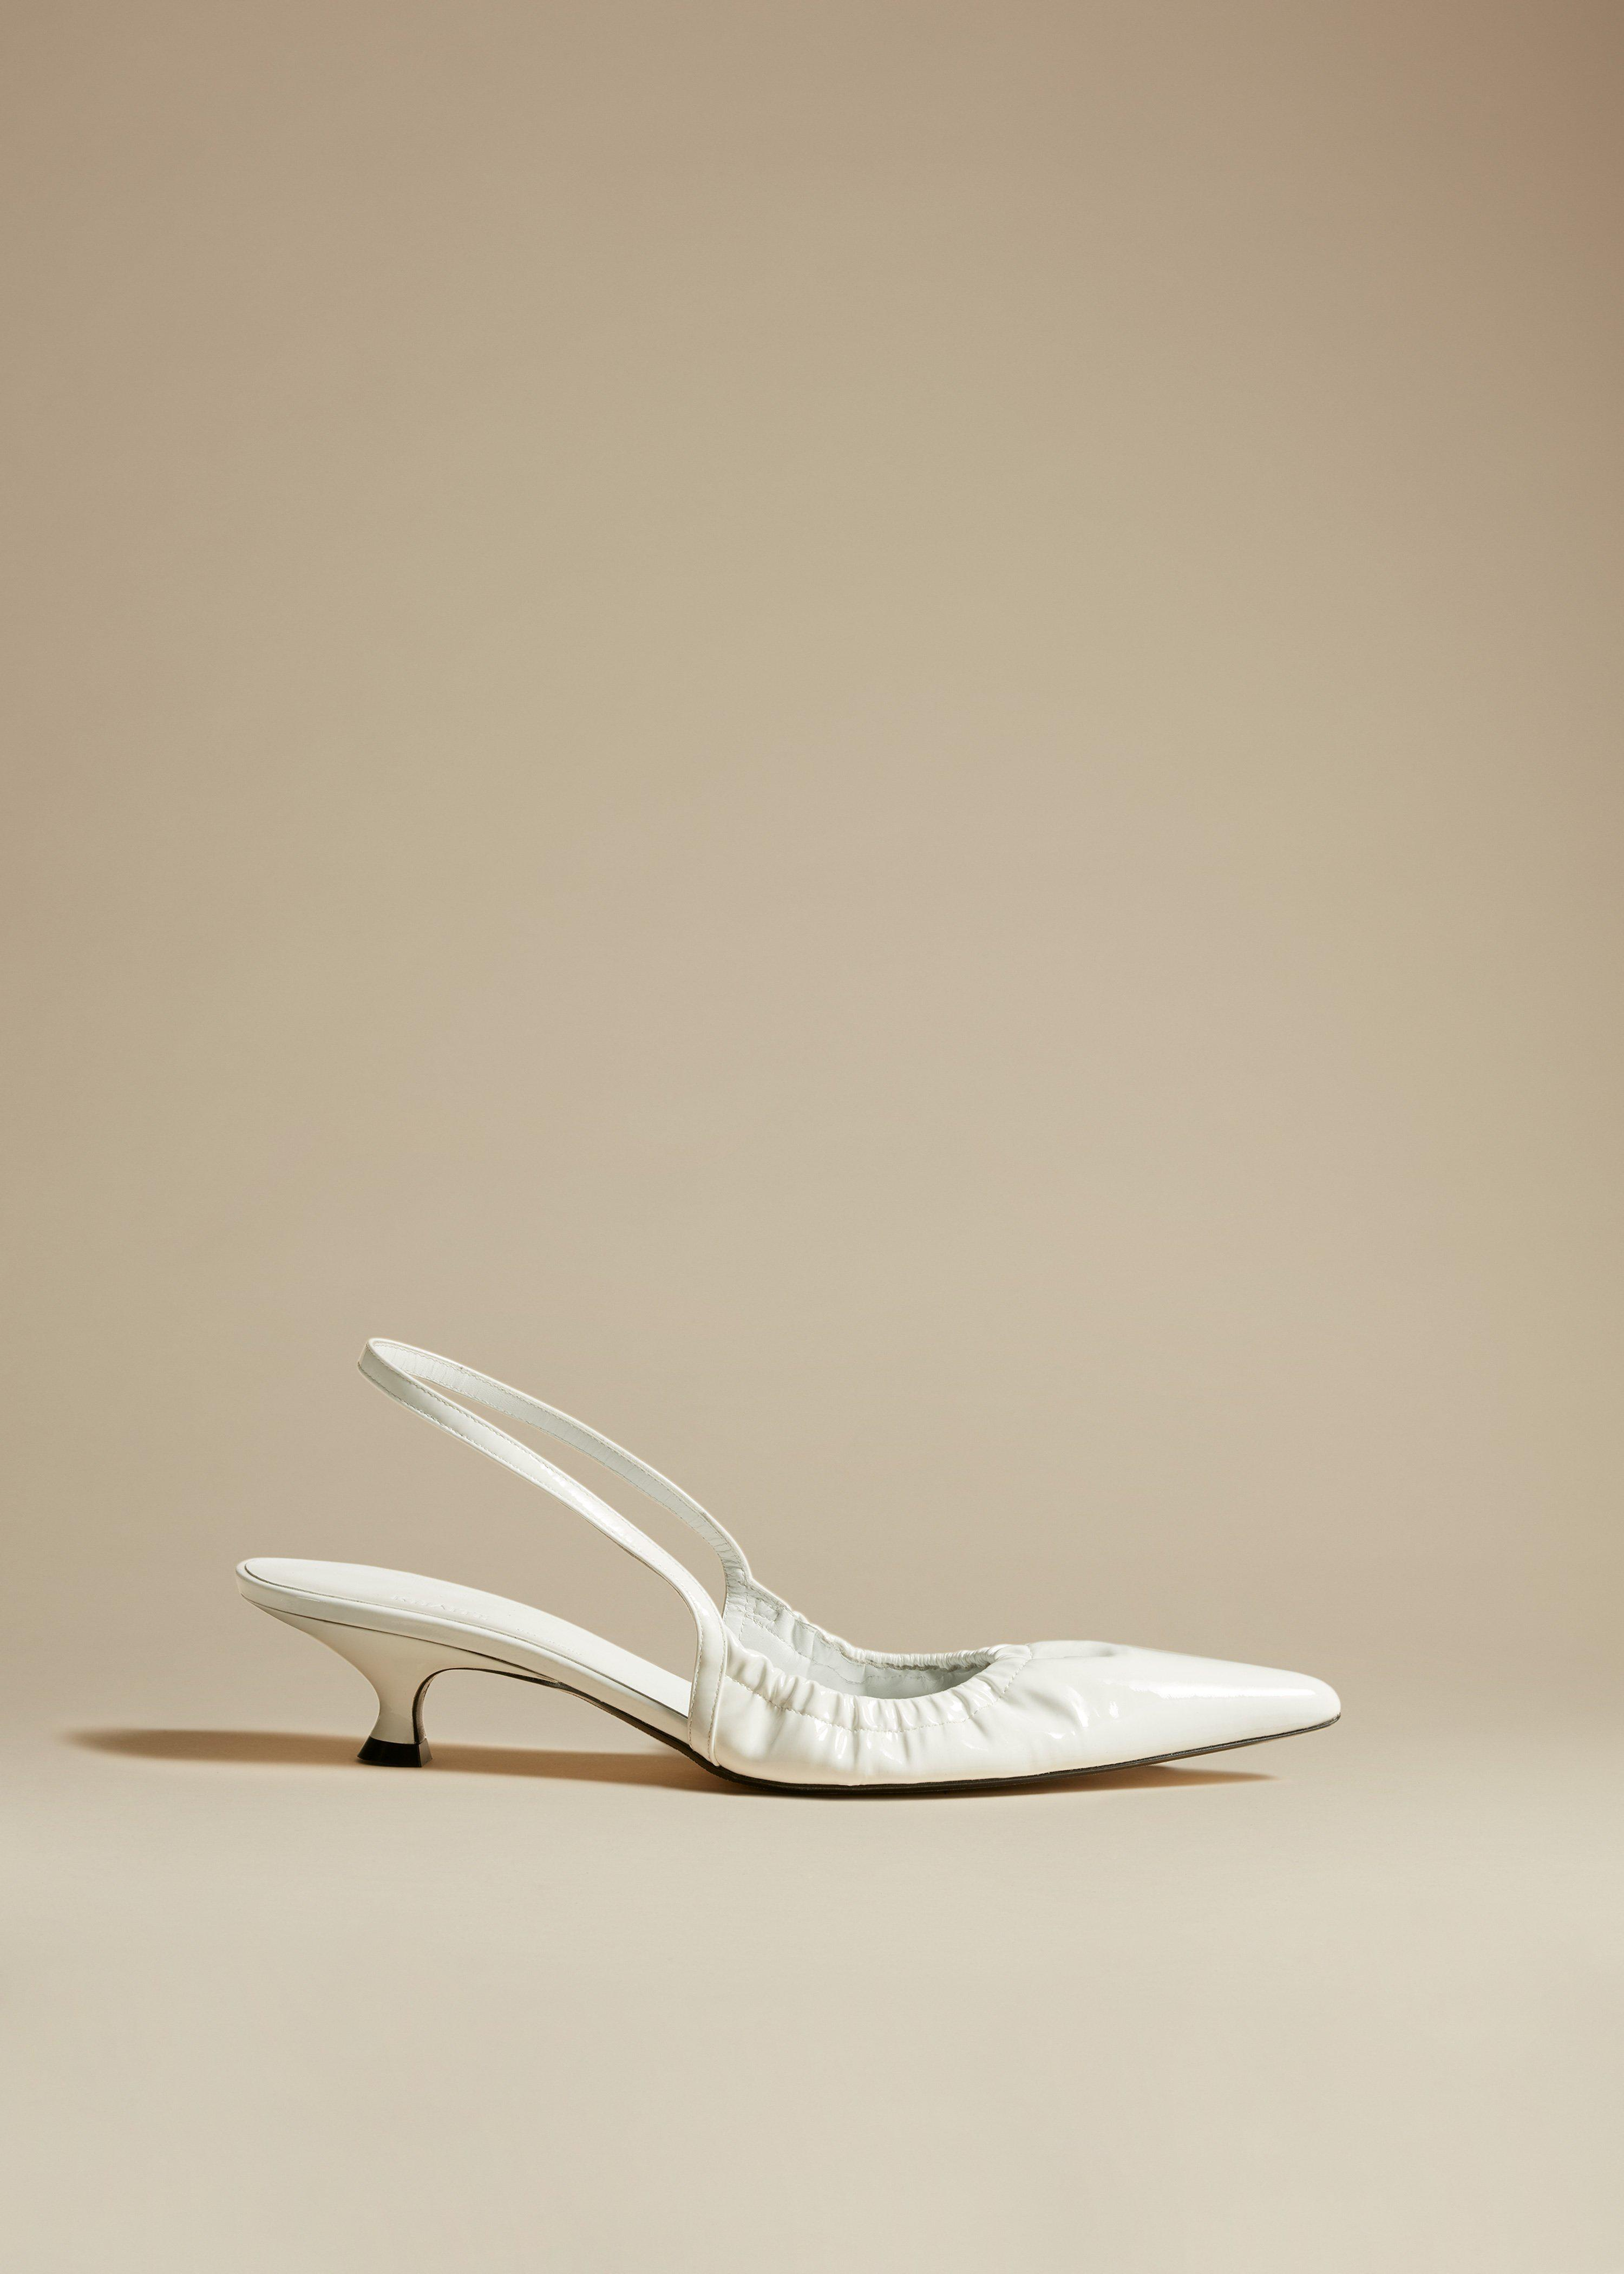 The Athens Pump in White Patent Leather